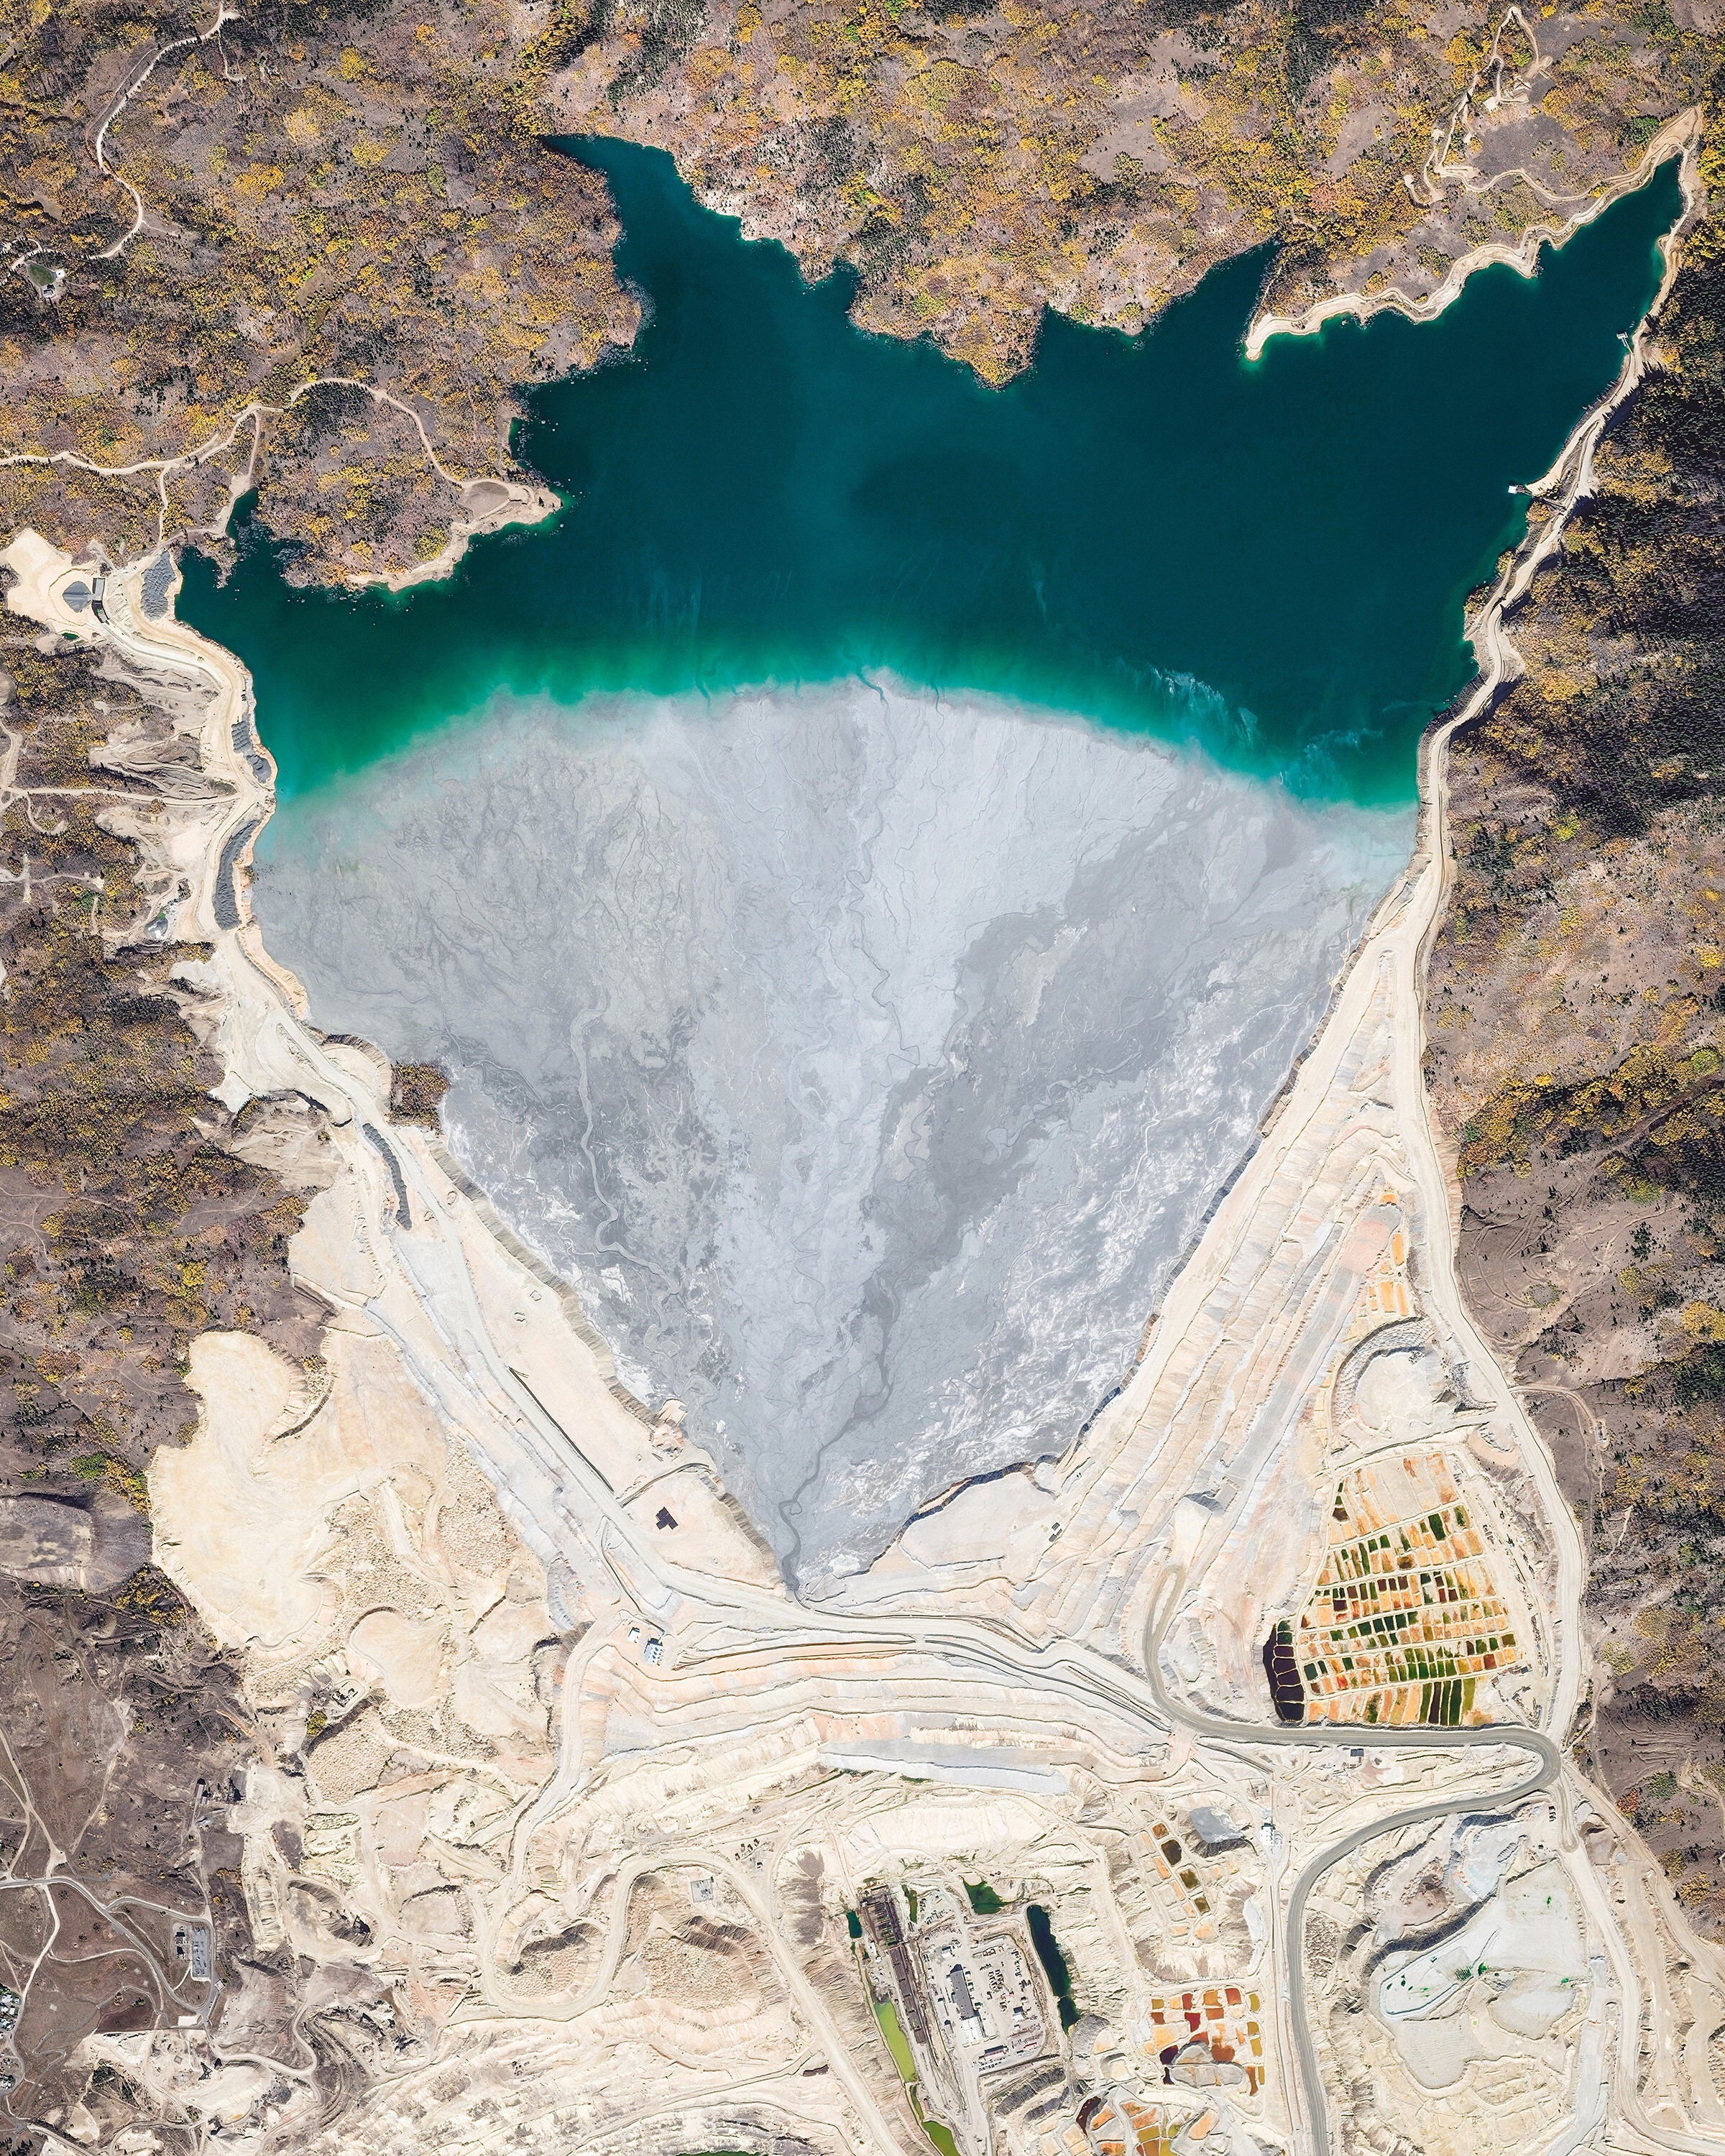 "The Yankee Doodle Tailings Pond in Butte, Montana, is used as a dumping site for leftover materials from nearby copper mines. It covers an area of roughly 2.5 square miles (6.5 sq. km) and is contained by a 650-foot (200 m) tall earthen dam — one of the largest of its kind in the United States. To help offset the acidity of mine waste, lime rock is added to create a non-acidic tailings slurry.  46°02'37.3""N, 112°30'23.2""W  Source imagery: DigitalGlobe"